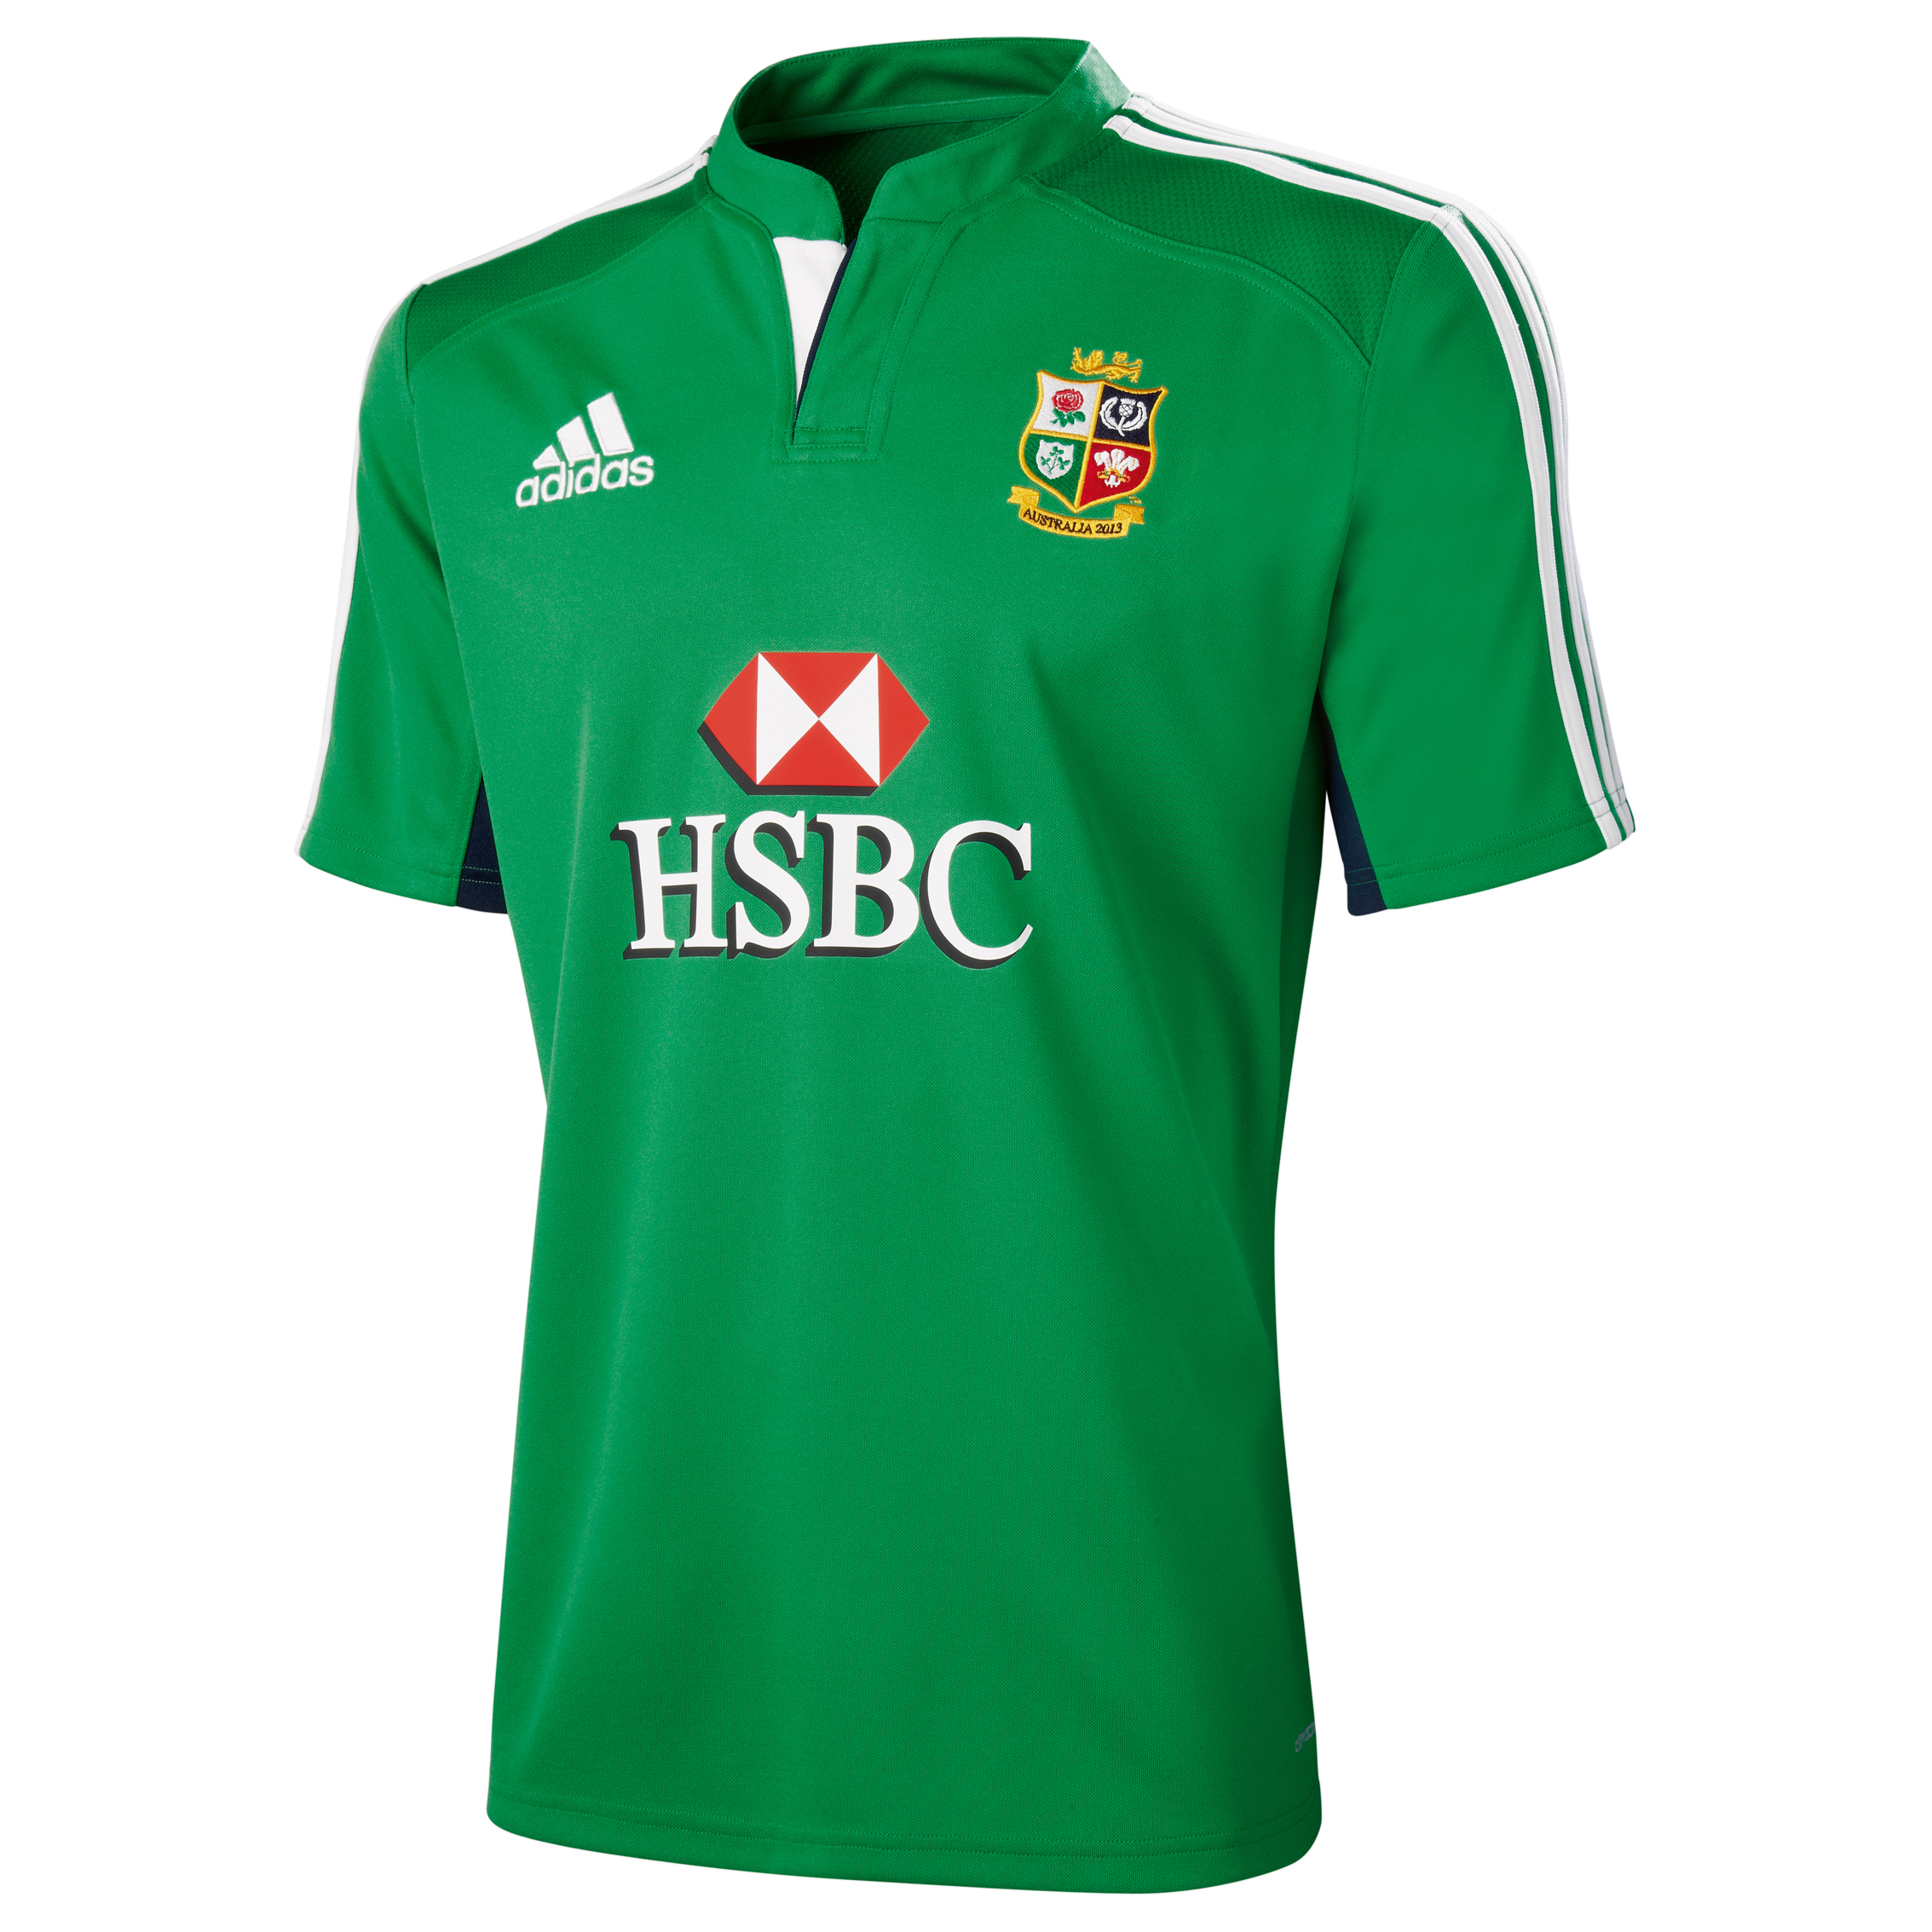 adidas British and Irish Lions Training Top - Prime Green/White